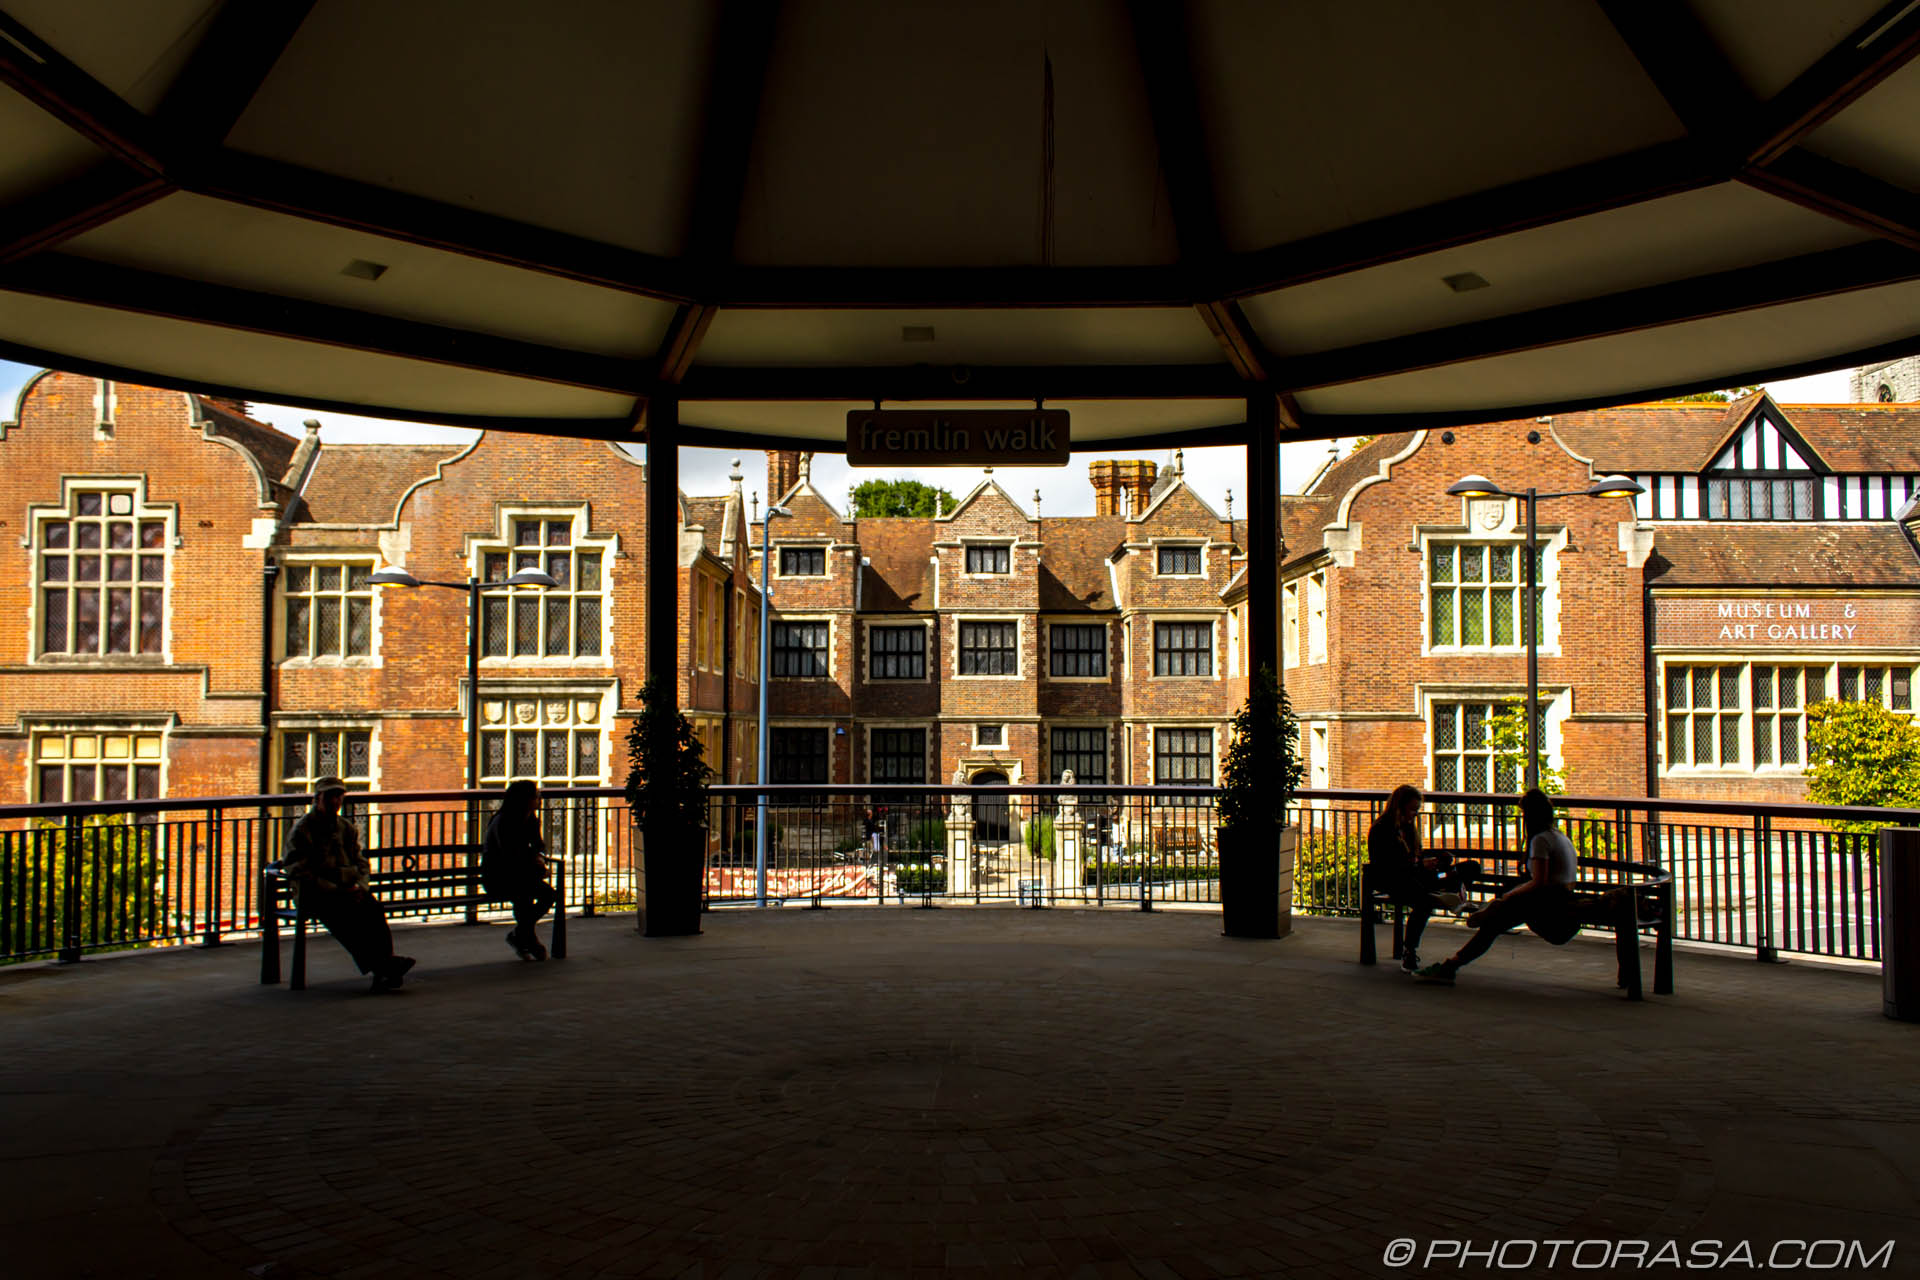 https://photorasa.com/maidstone/maidstone-museum-from-fremlin-walk/